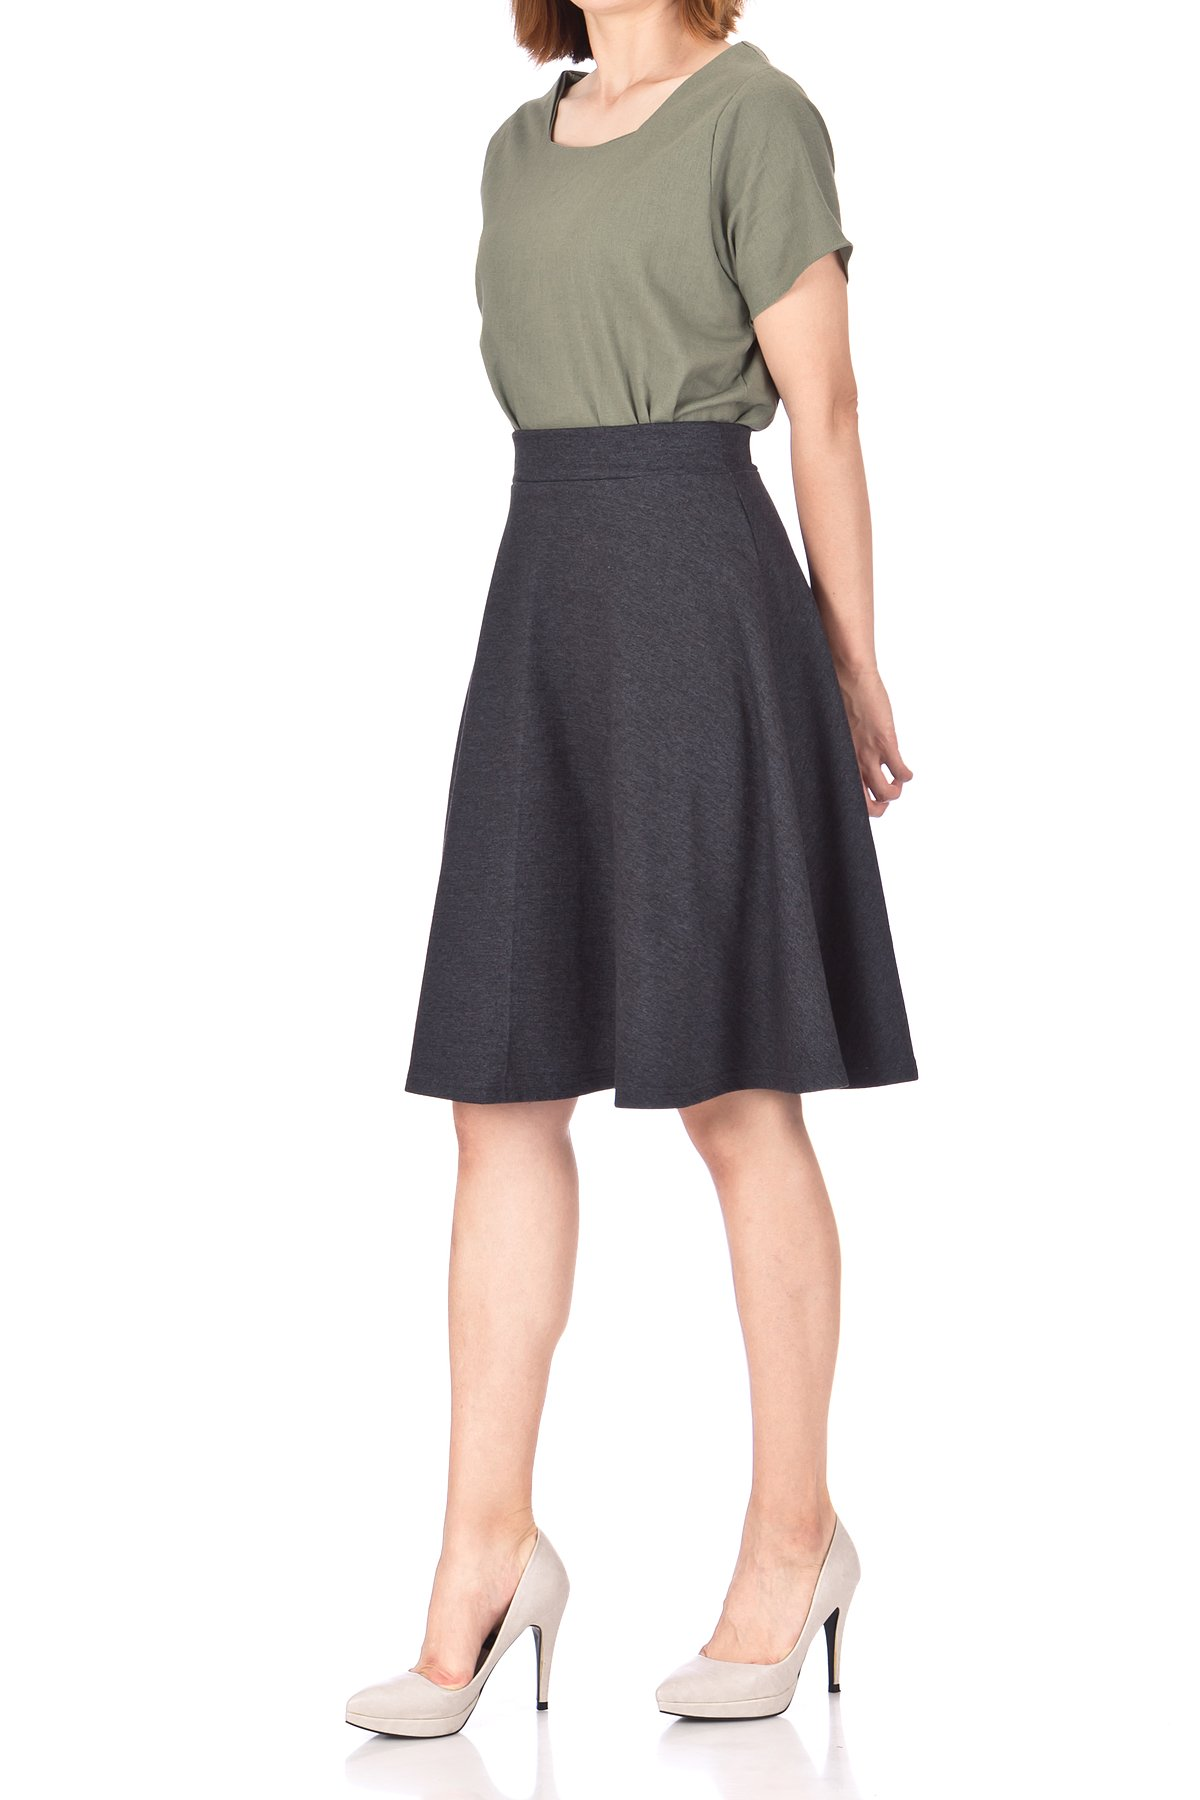 Comfy and Lovely Cotton Blend Versatile Casual Office High Waist A line Full Flared Swing Circle Skater Knee Length Skirt Charcoal 04 1